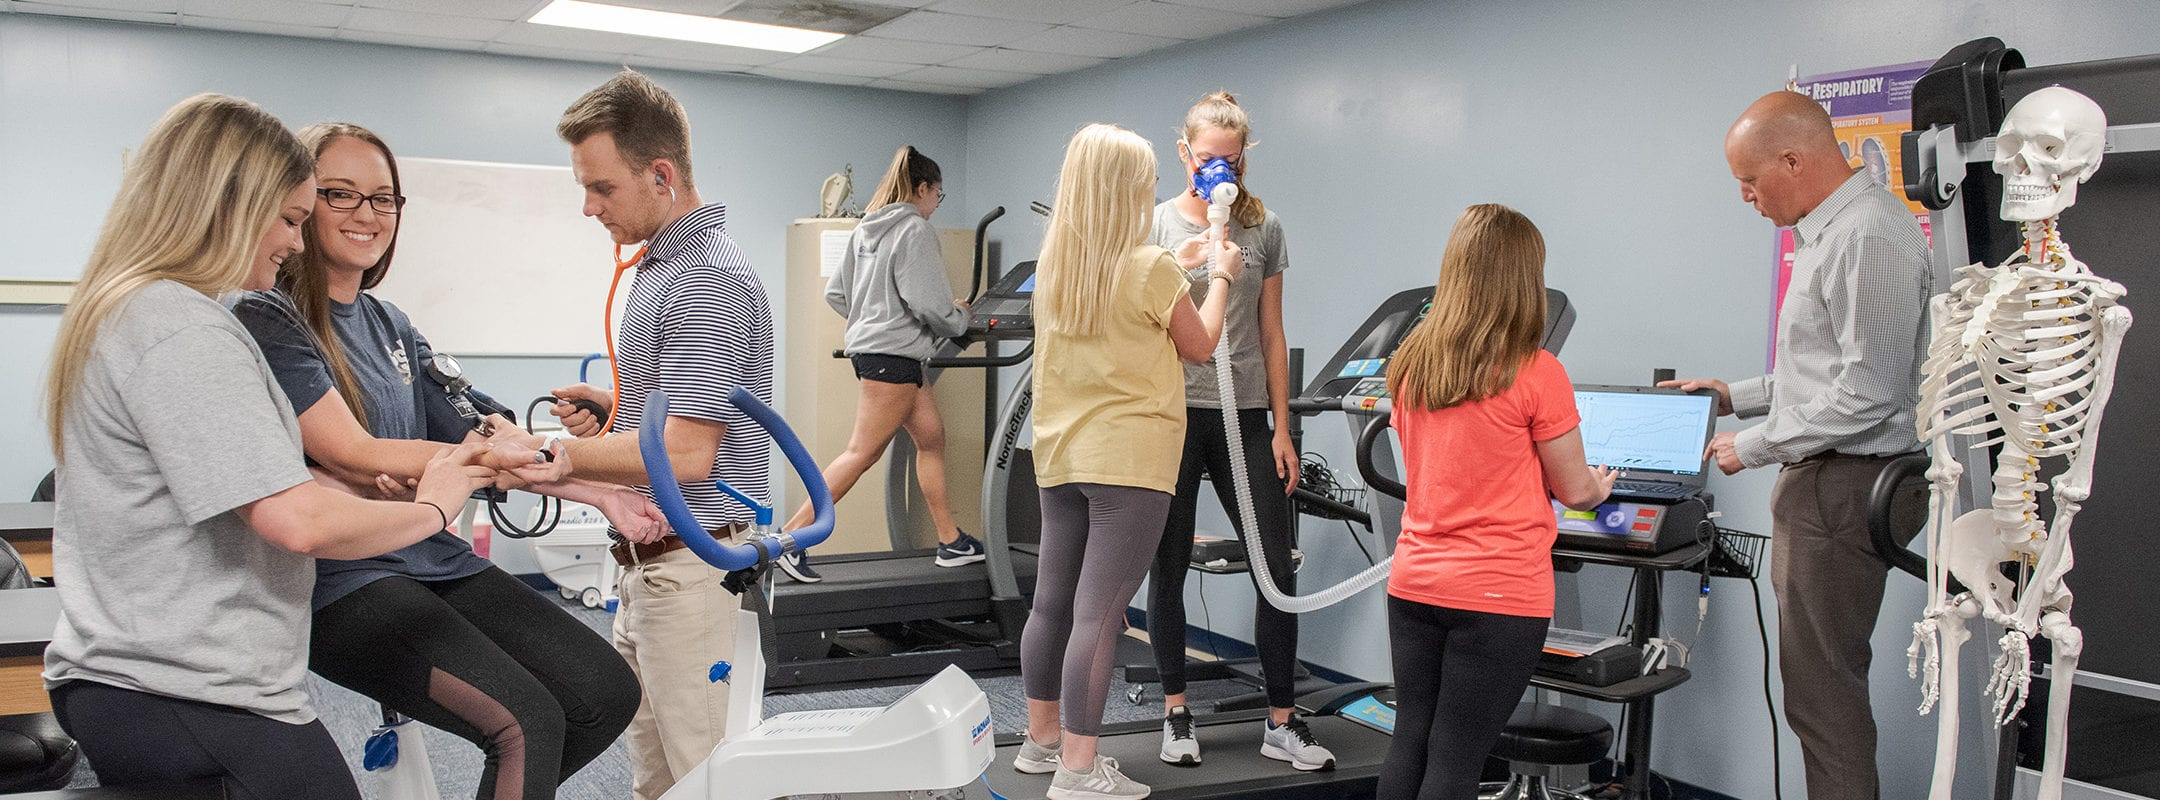 Students being tested on various exercise equipment in a classroom gym.